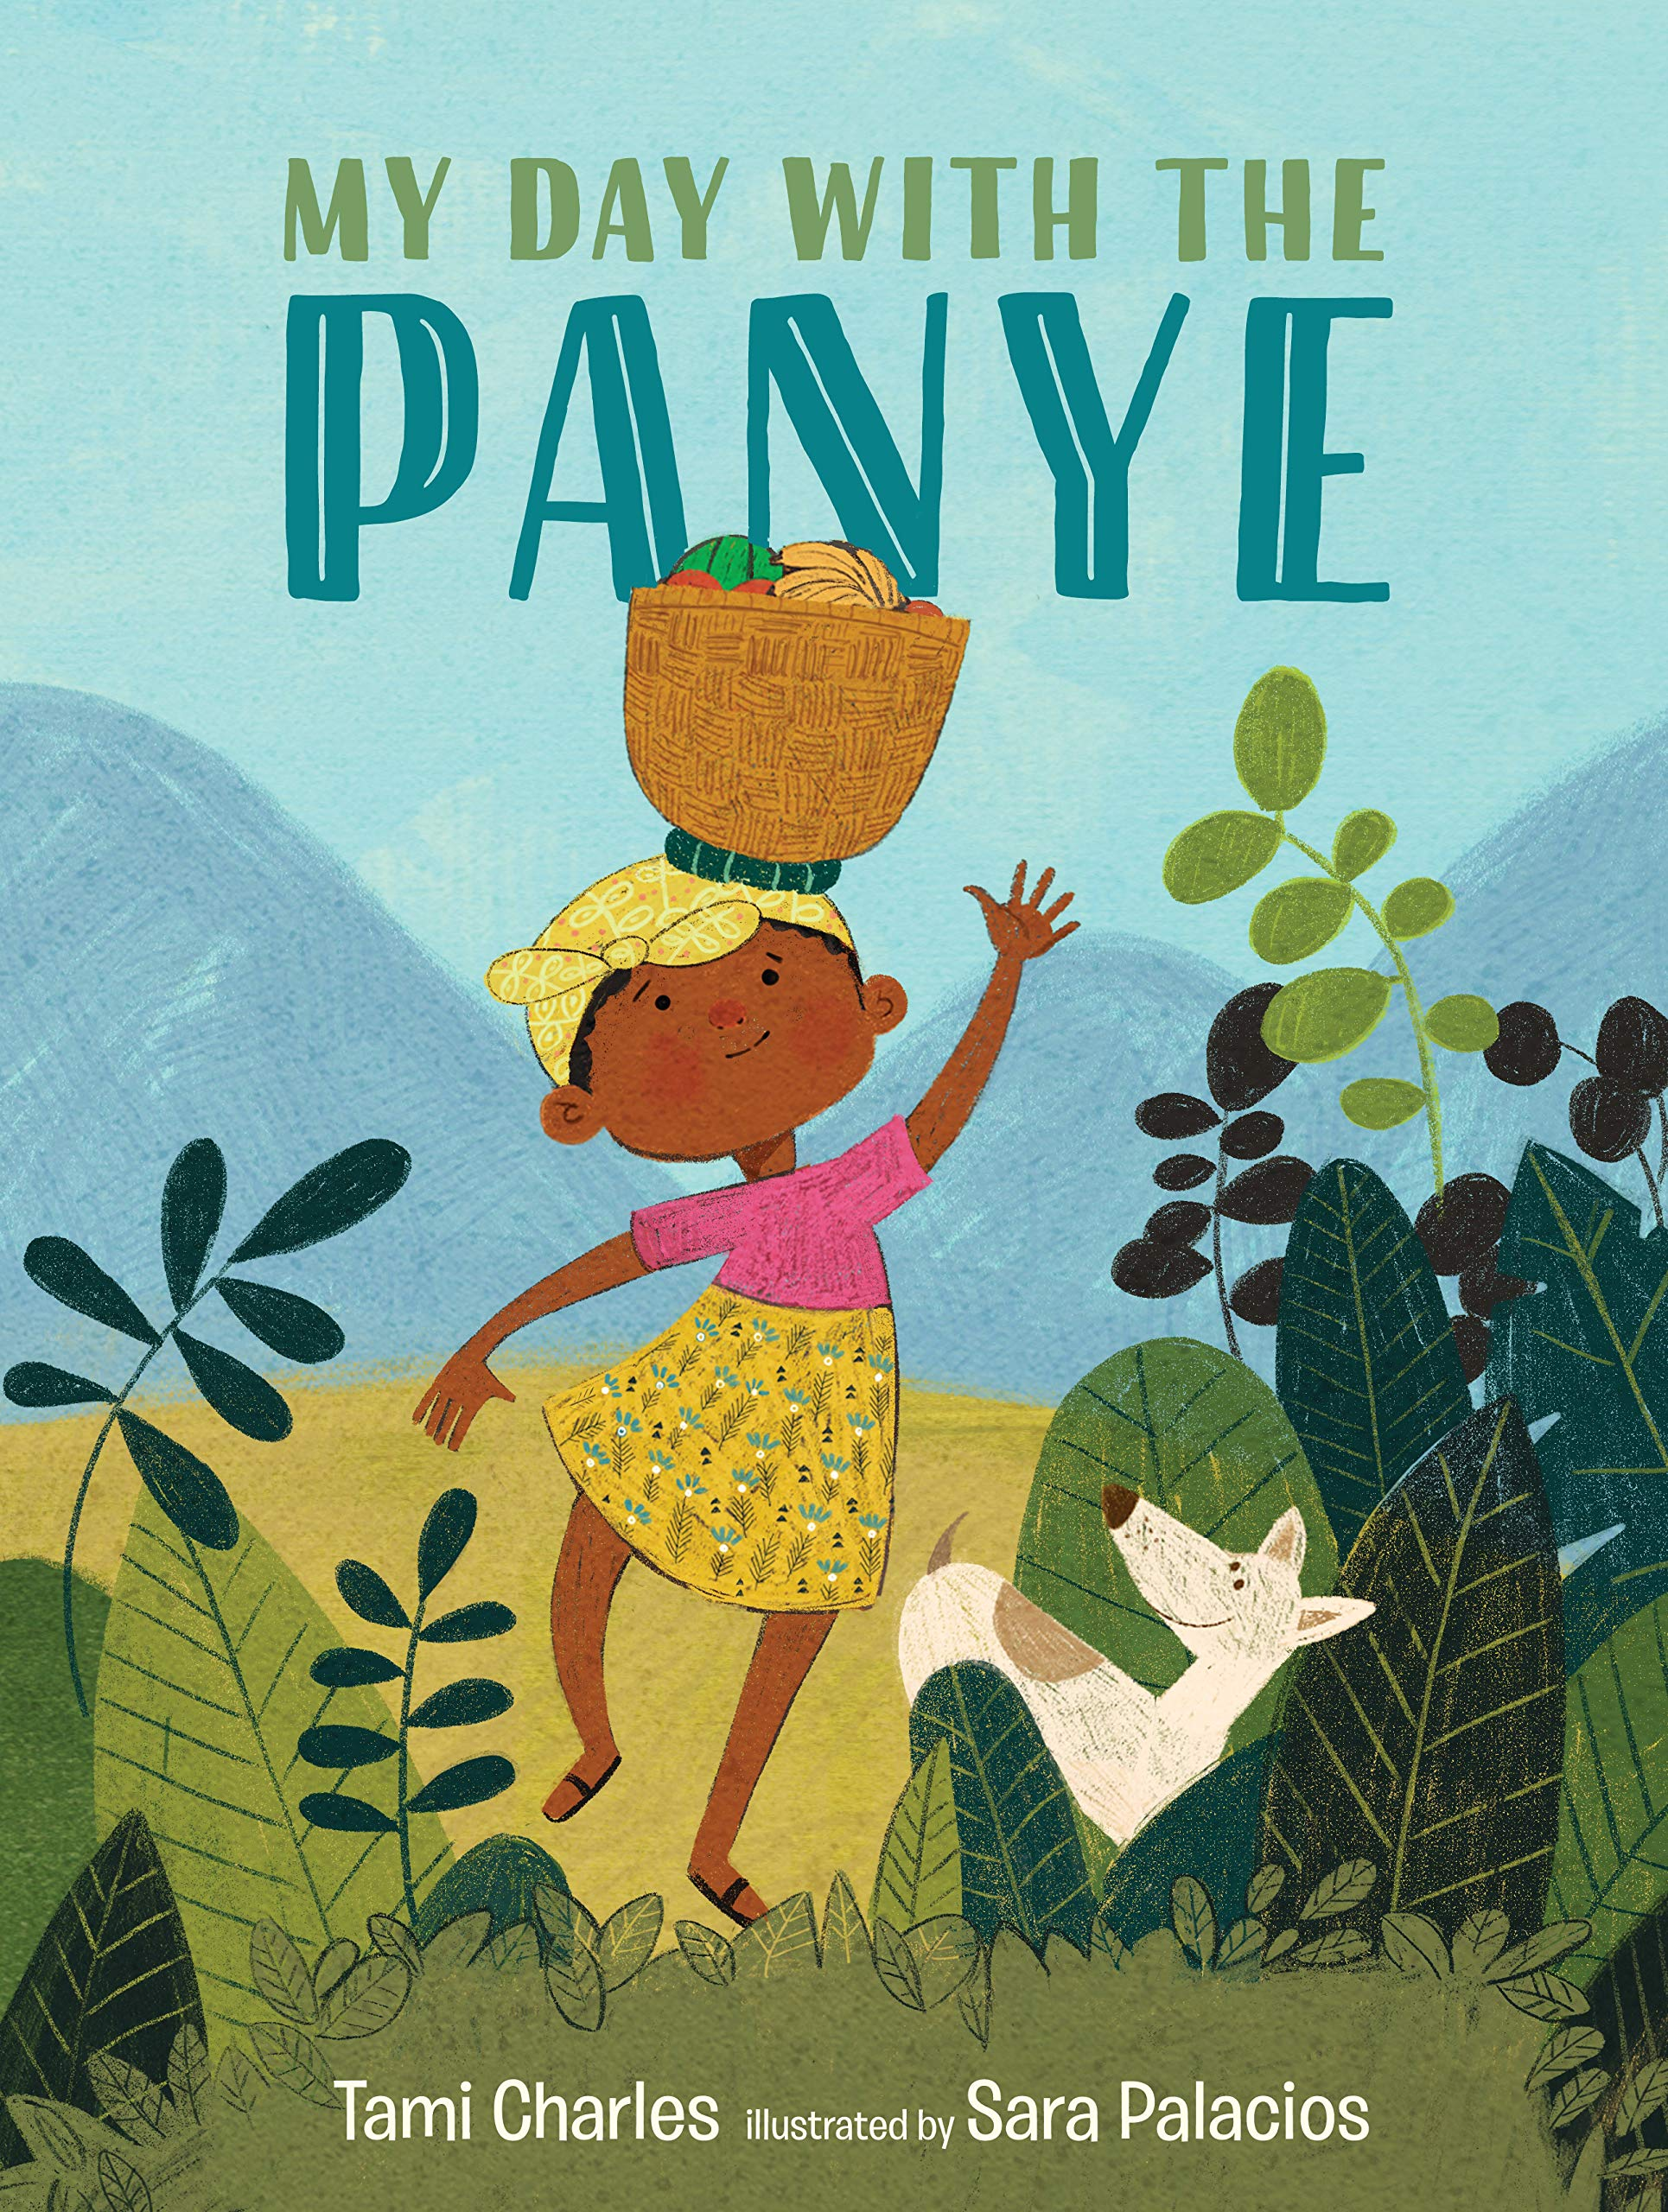 Image result for my day with the panye